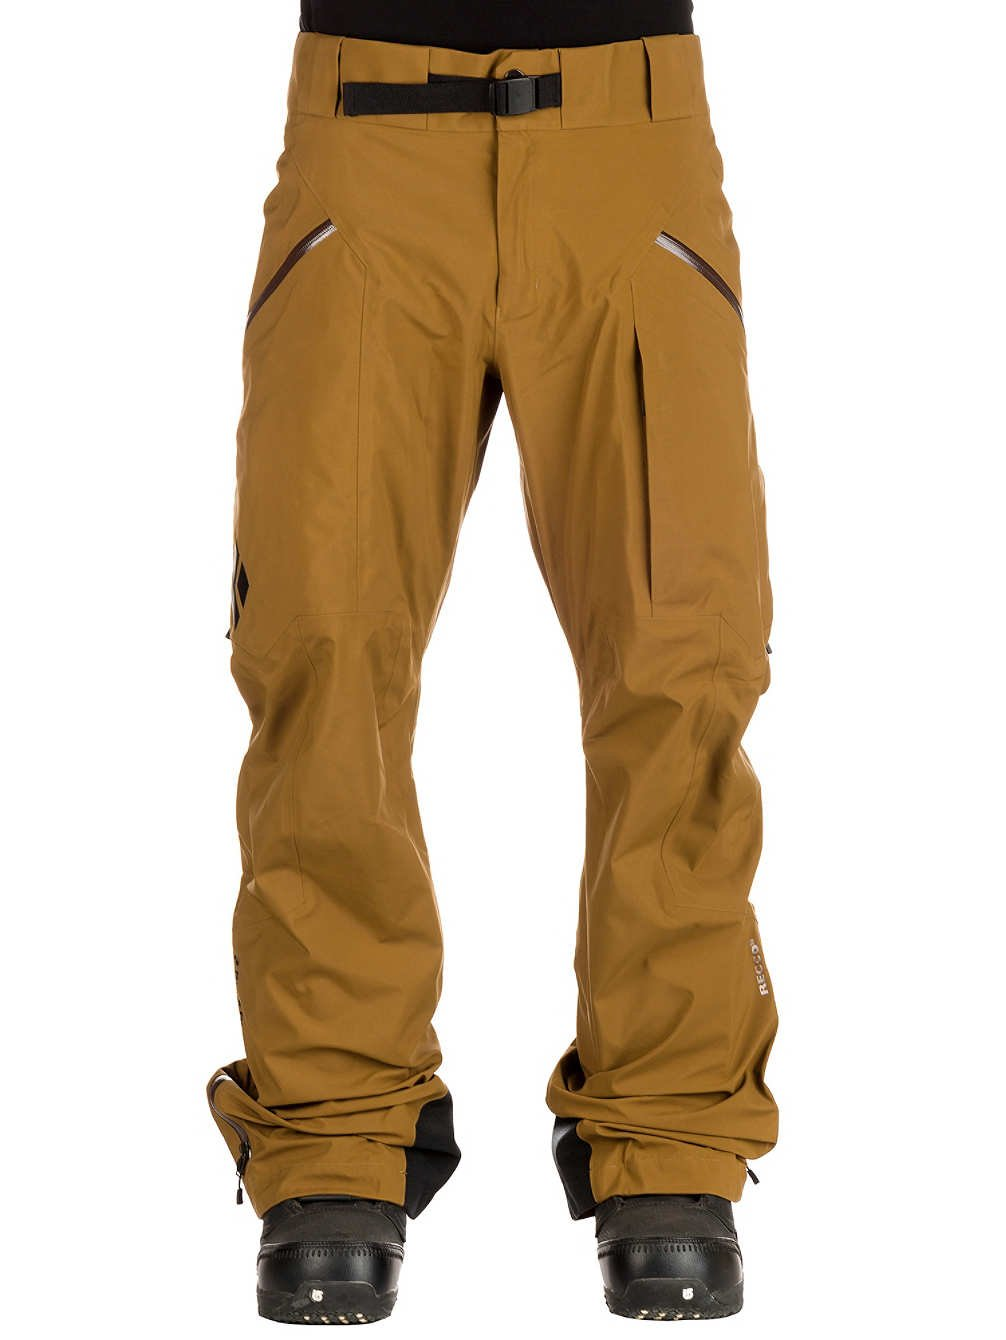 ブラックダイヤモンドMission Pant – Men 's B0742ZCBLR XL|Dark Curry Dark Curry XL